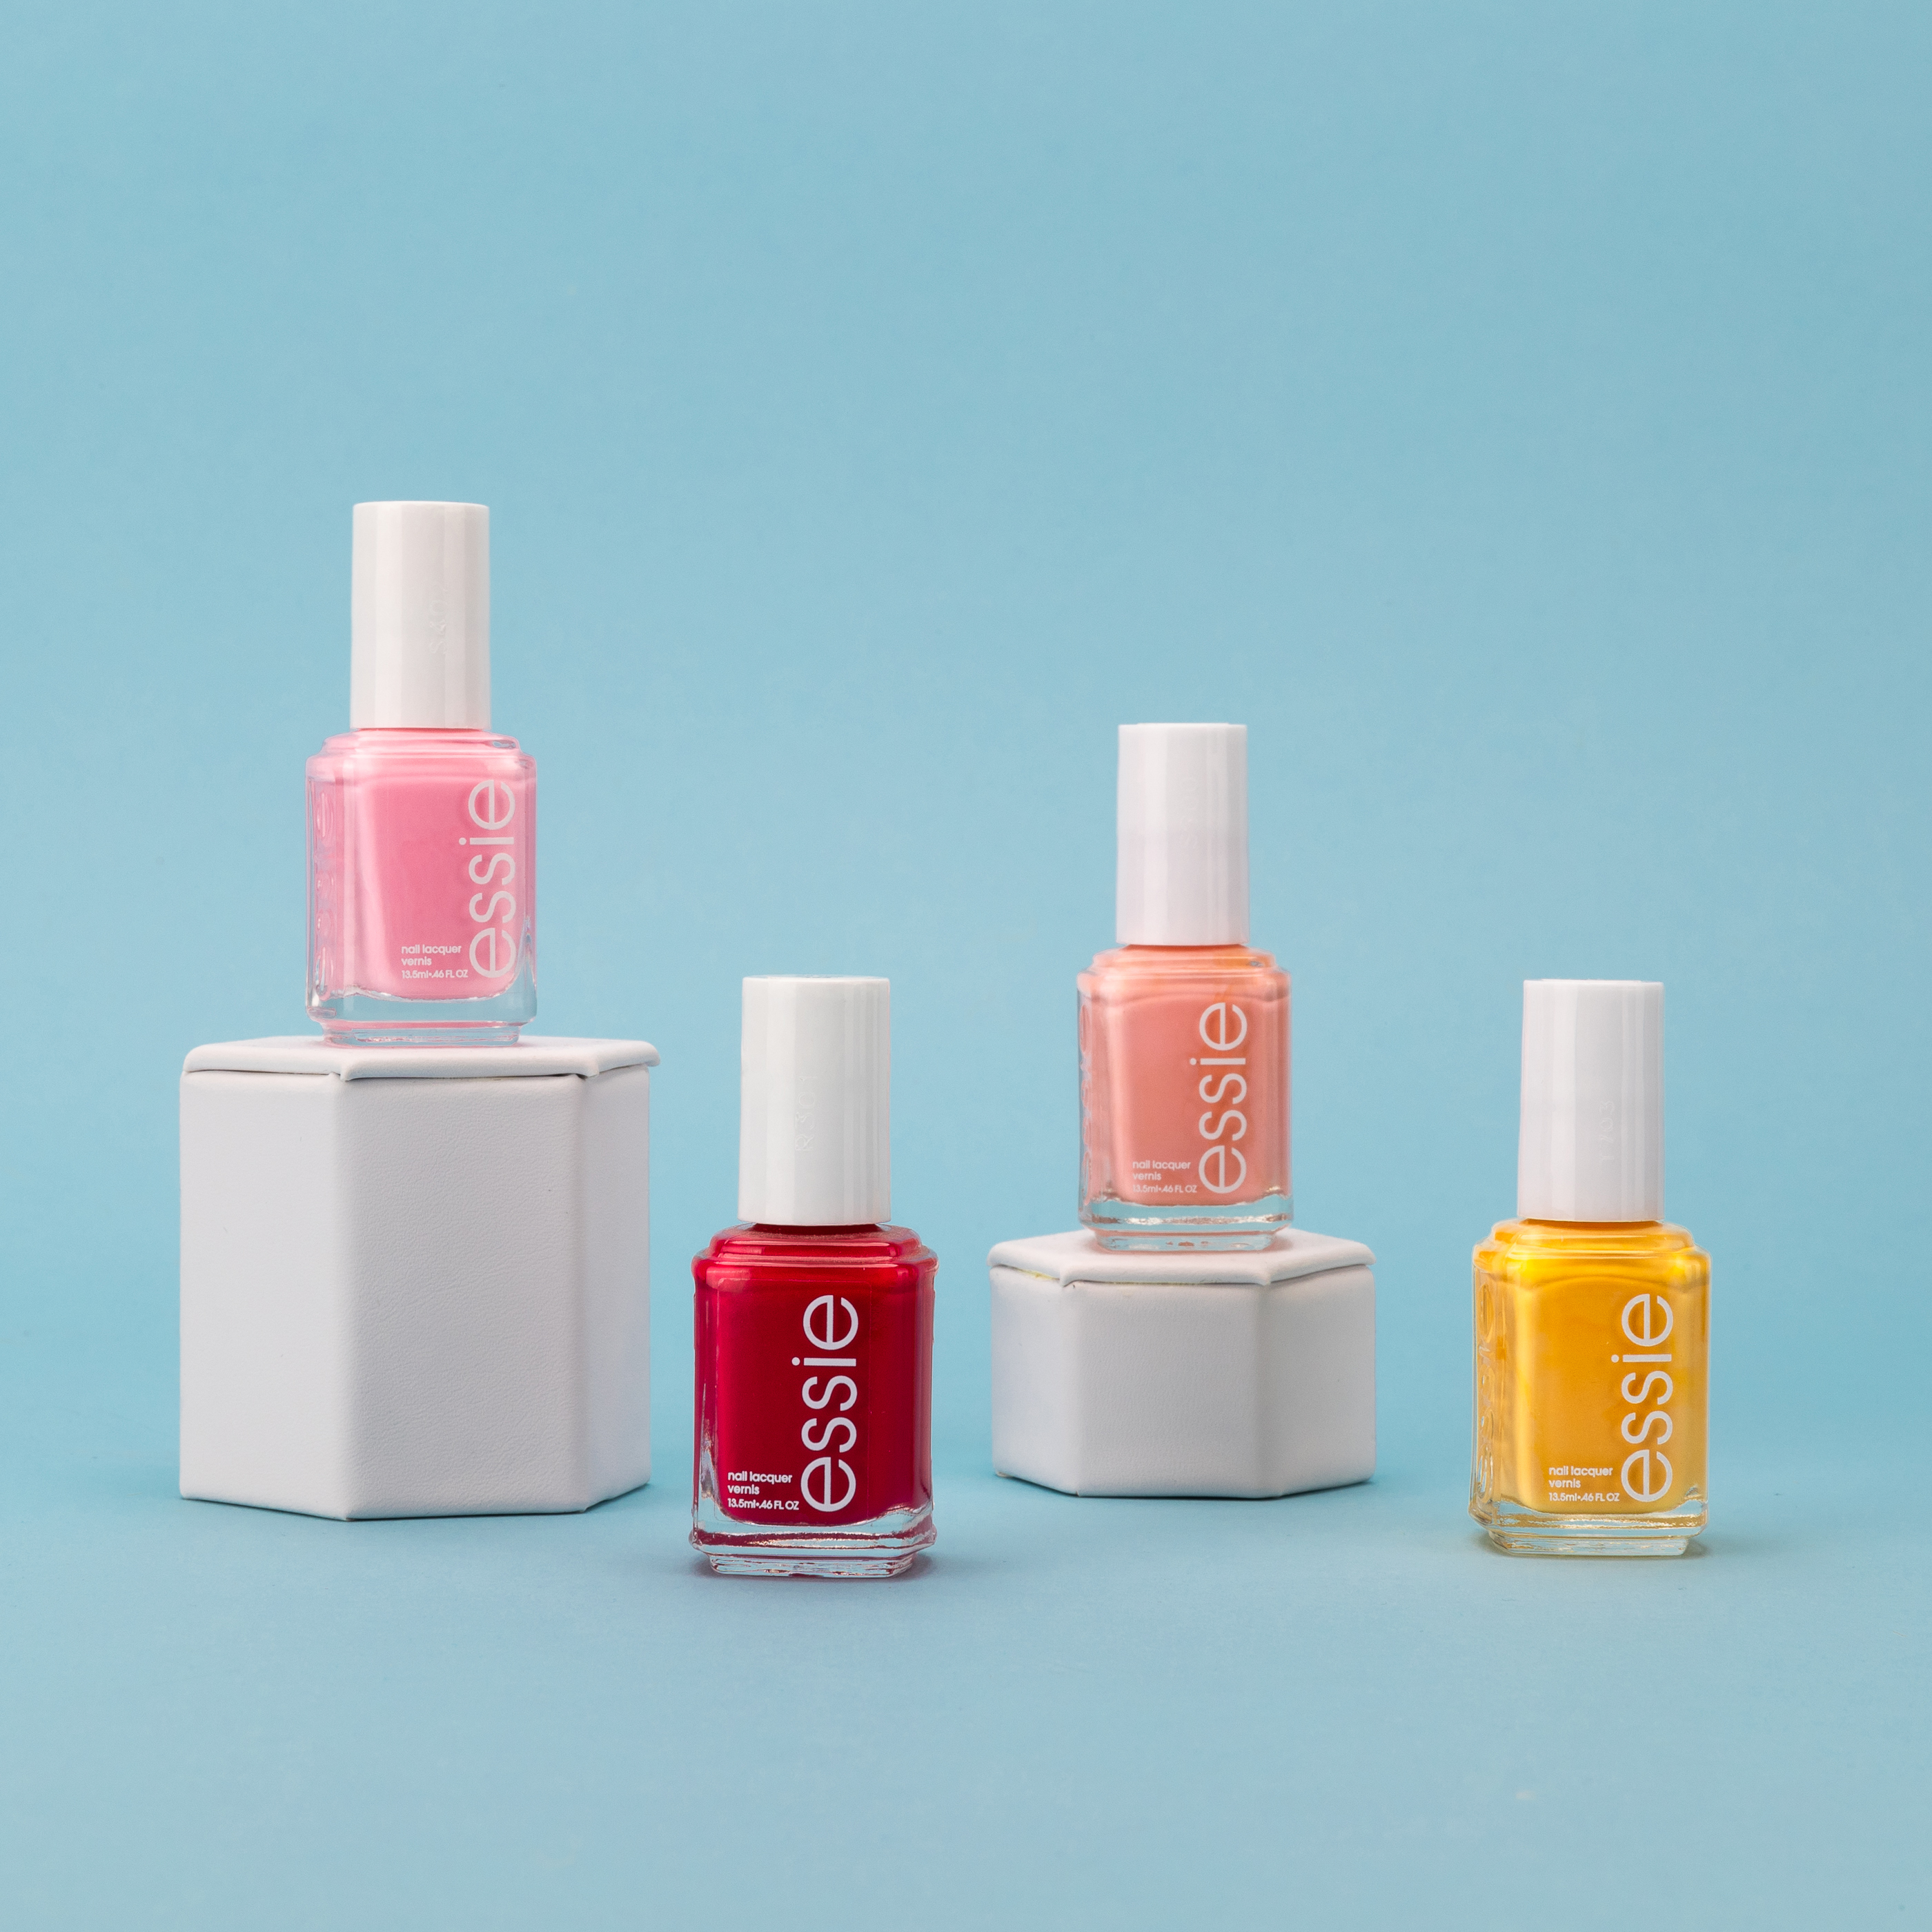 four small bottles of nail polish. the first and third are standing on taller podiums whereas the second and last ones are standing upright on the floor.